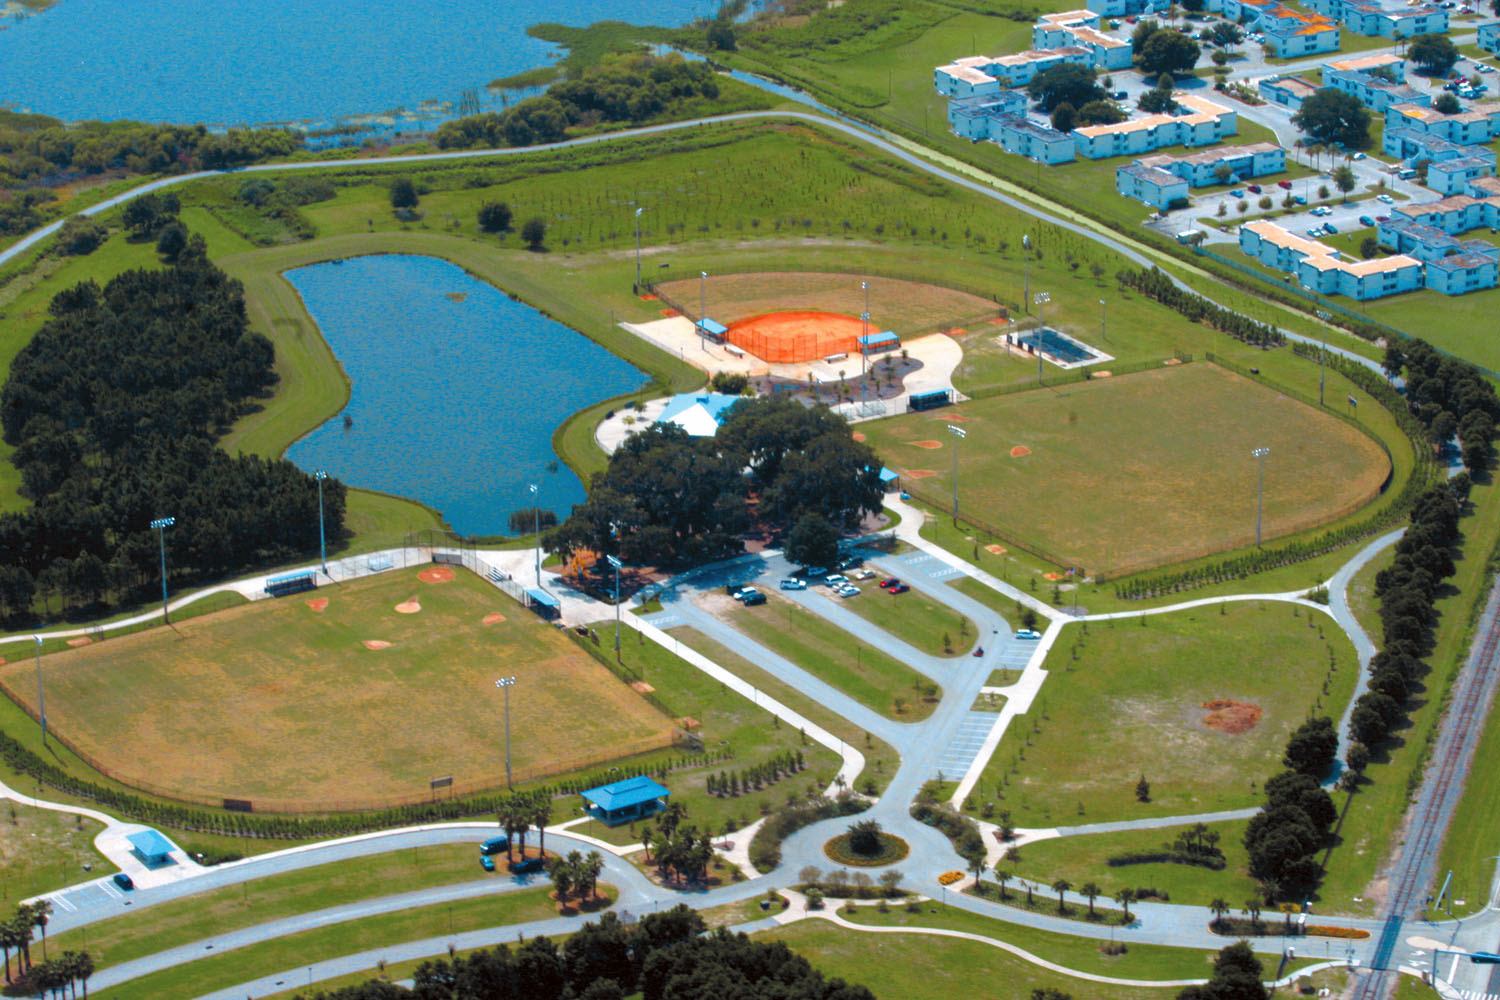 An aerial view of Lake Bonny Park